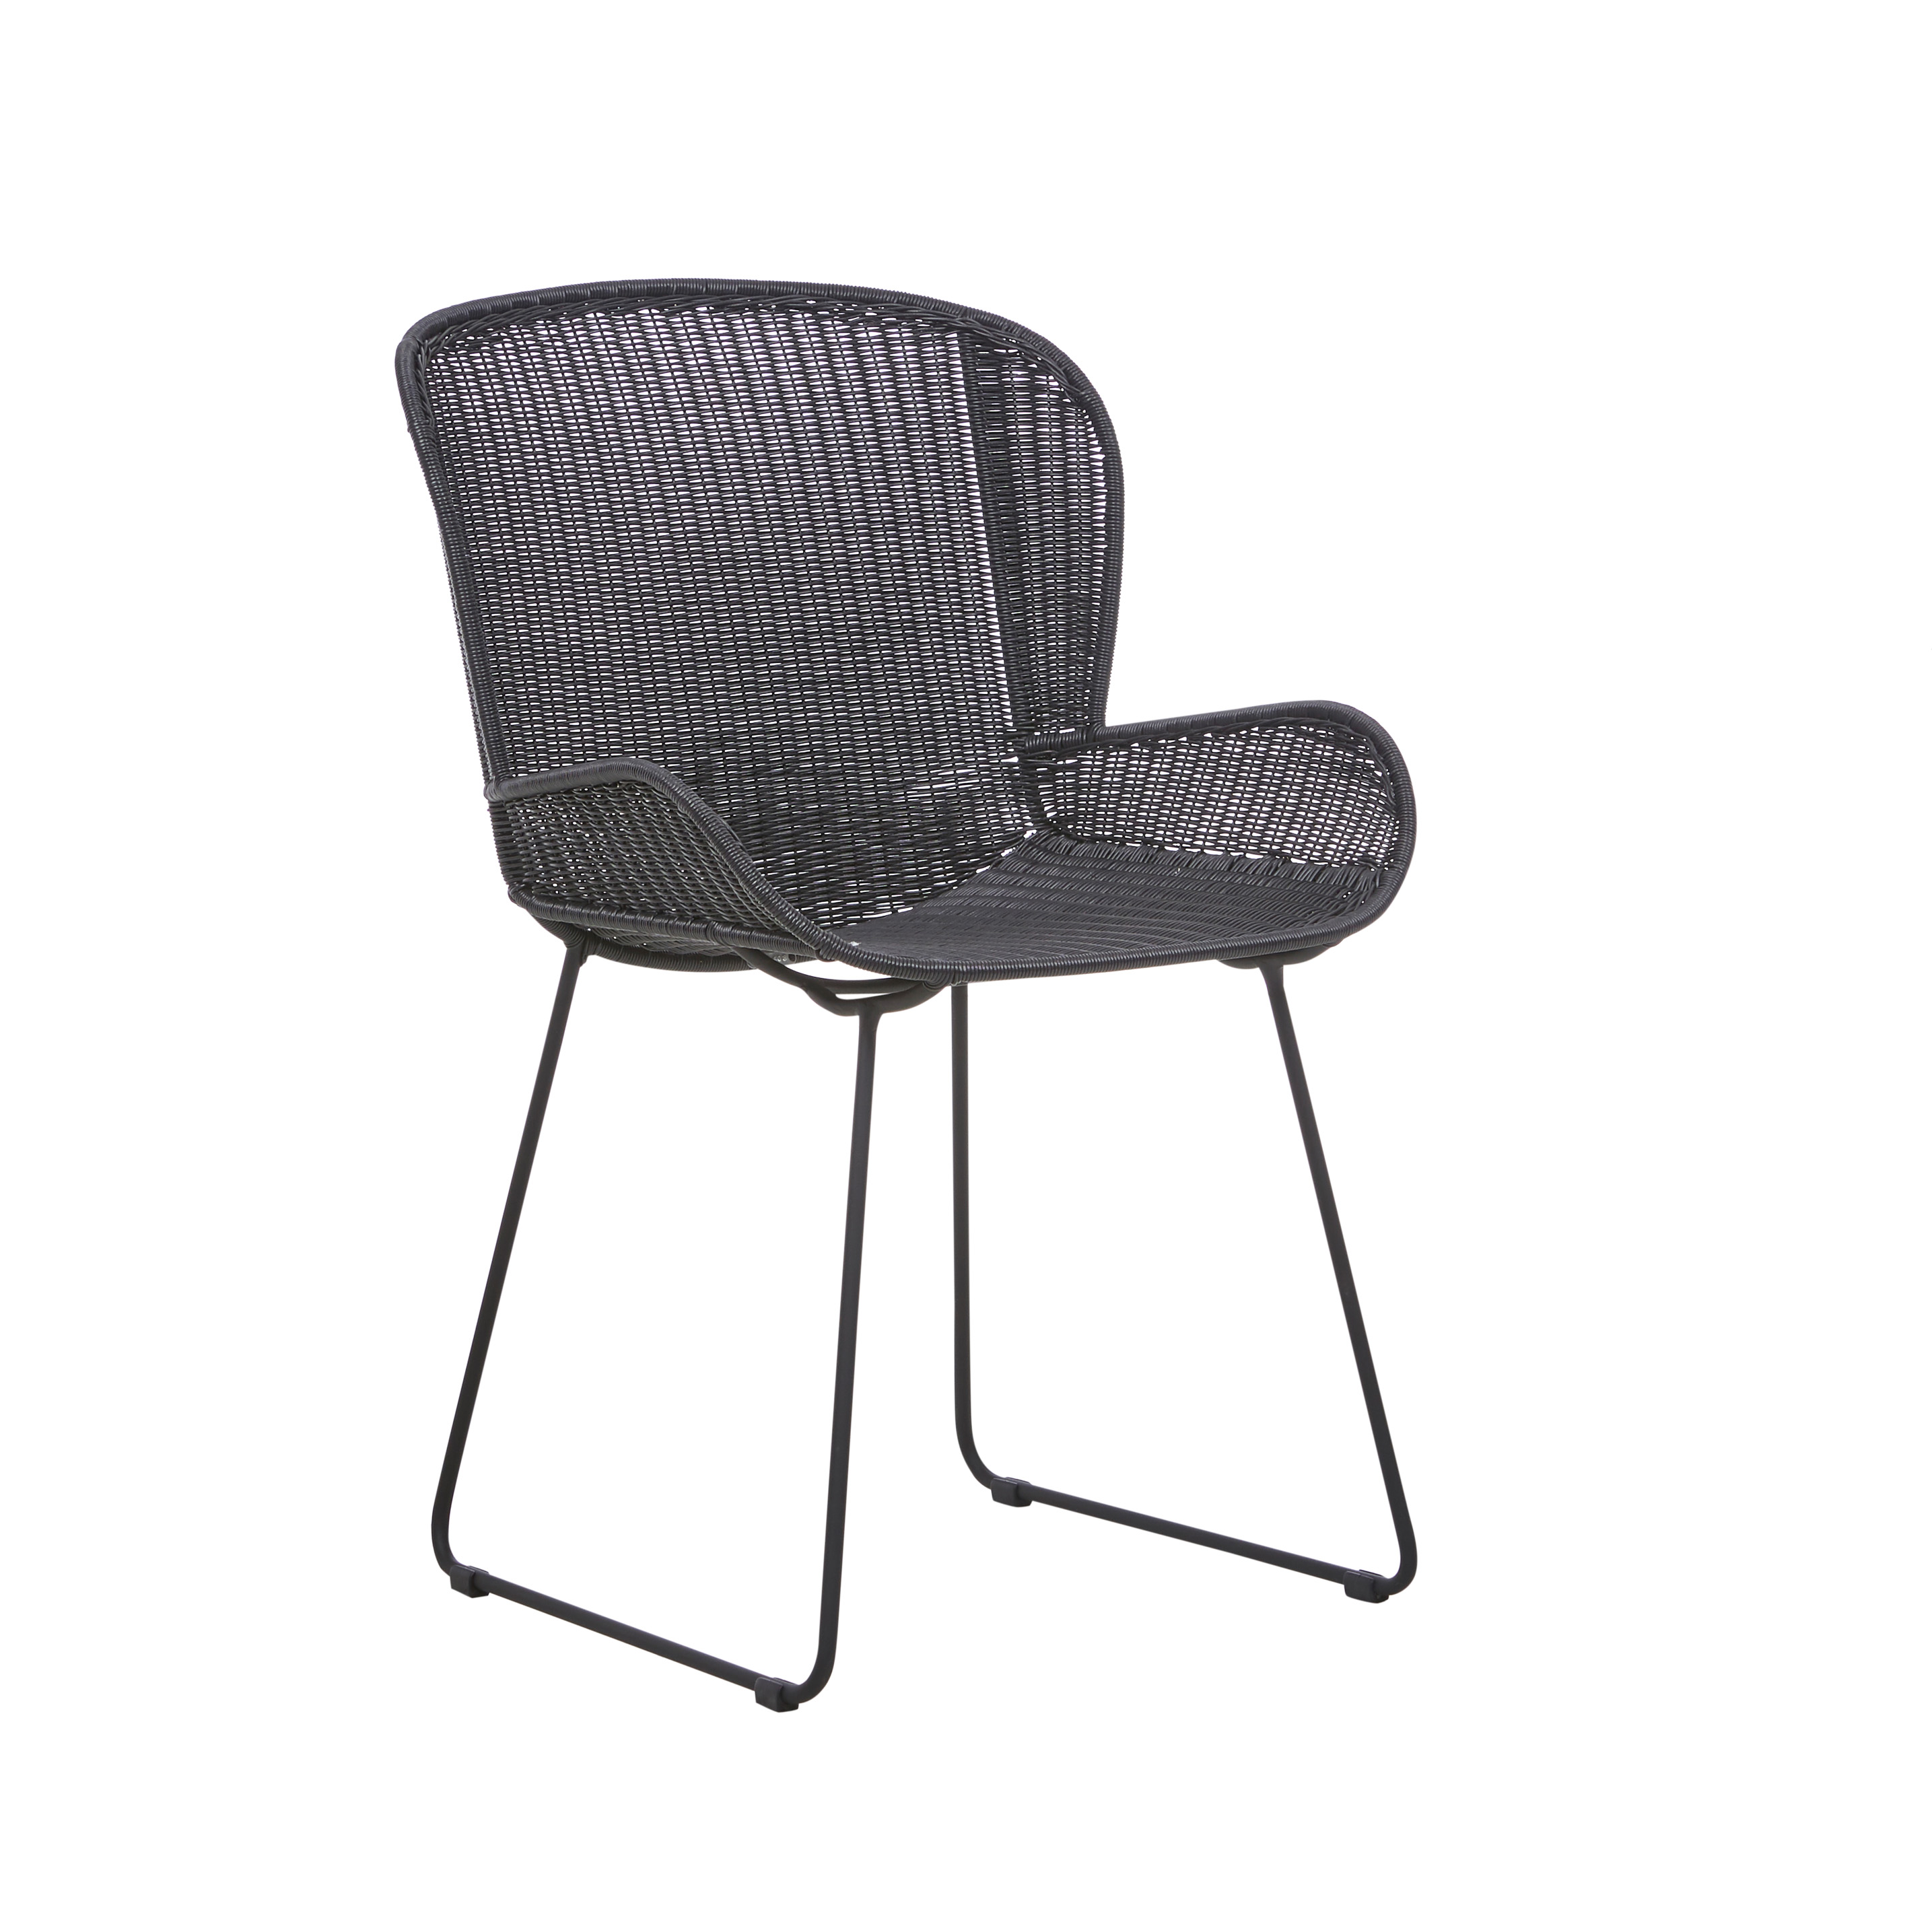 Furniture Hero-Images Dining-Chairs-Benches-and-Stools granada-butterfly-closed-weave-02